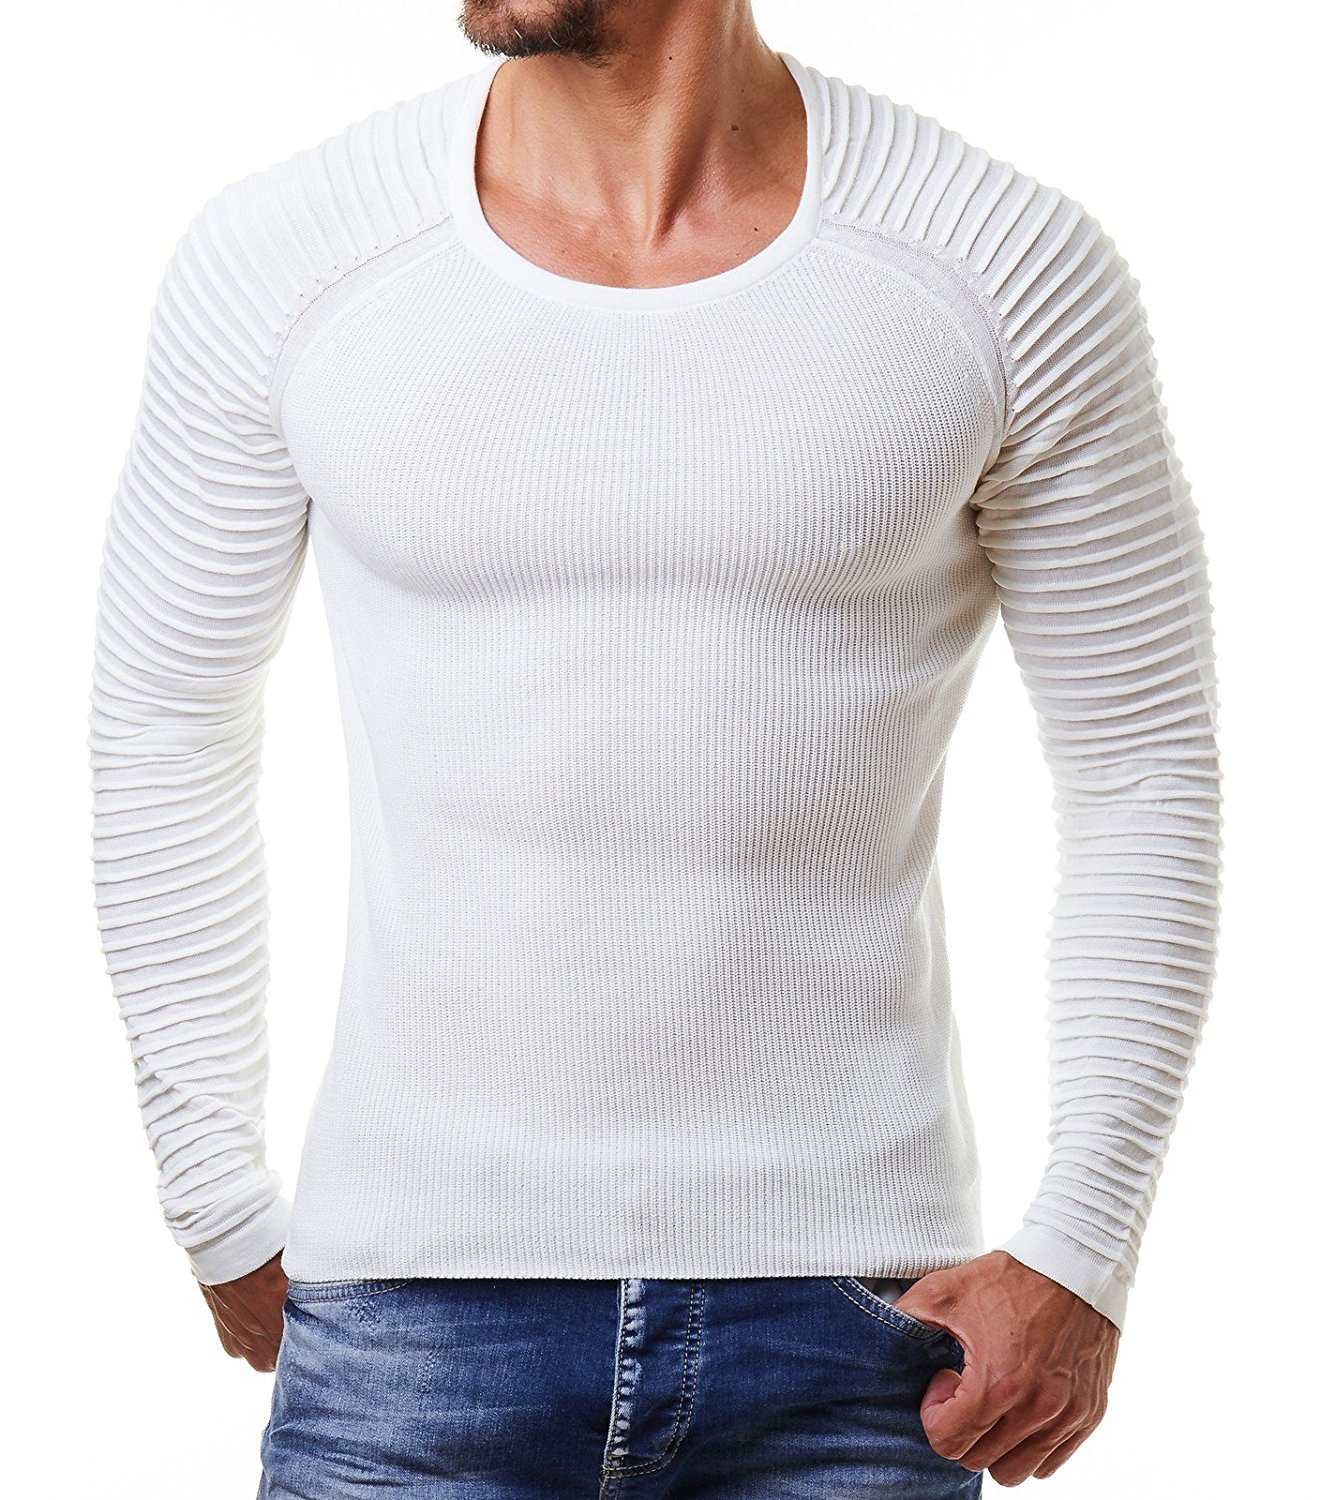 2020 Men Sweater Pullover O-neck Slim Fit Knitting Hombres Long Sleeve Sweaters Fashion V-neck Mens Sweaters M-XXL